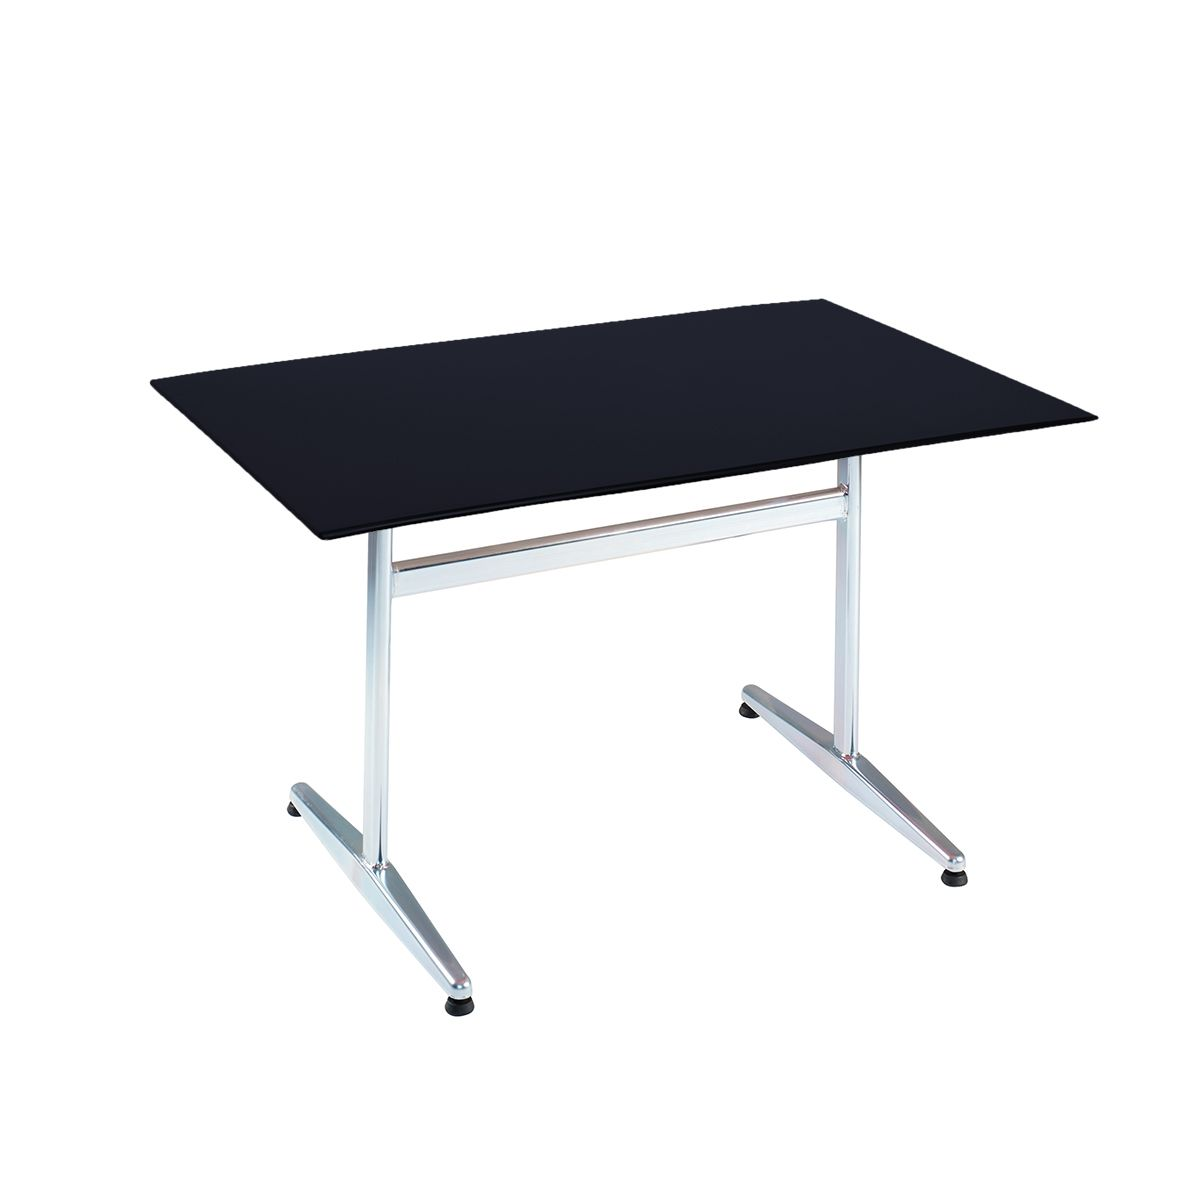 Table PRV anthracite, brillante, Piétement électrozingué en T Basic, 120 x 80 x 0.9 cm, H 73 cm